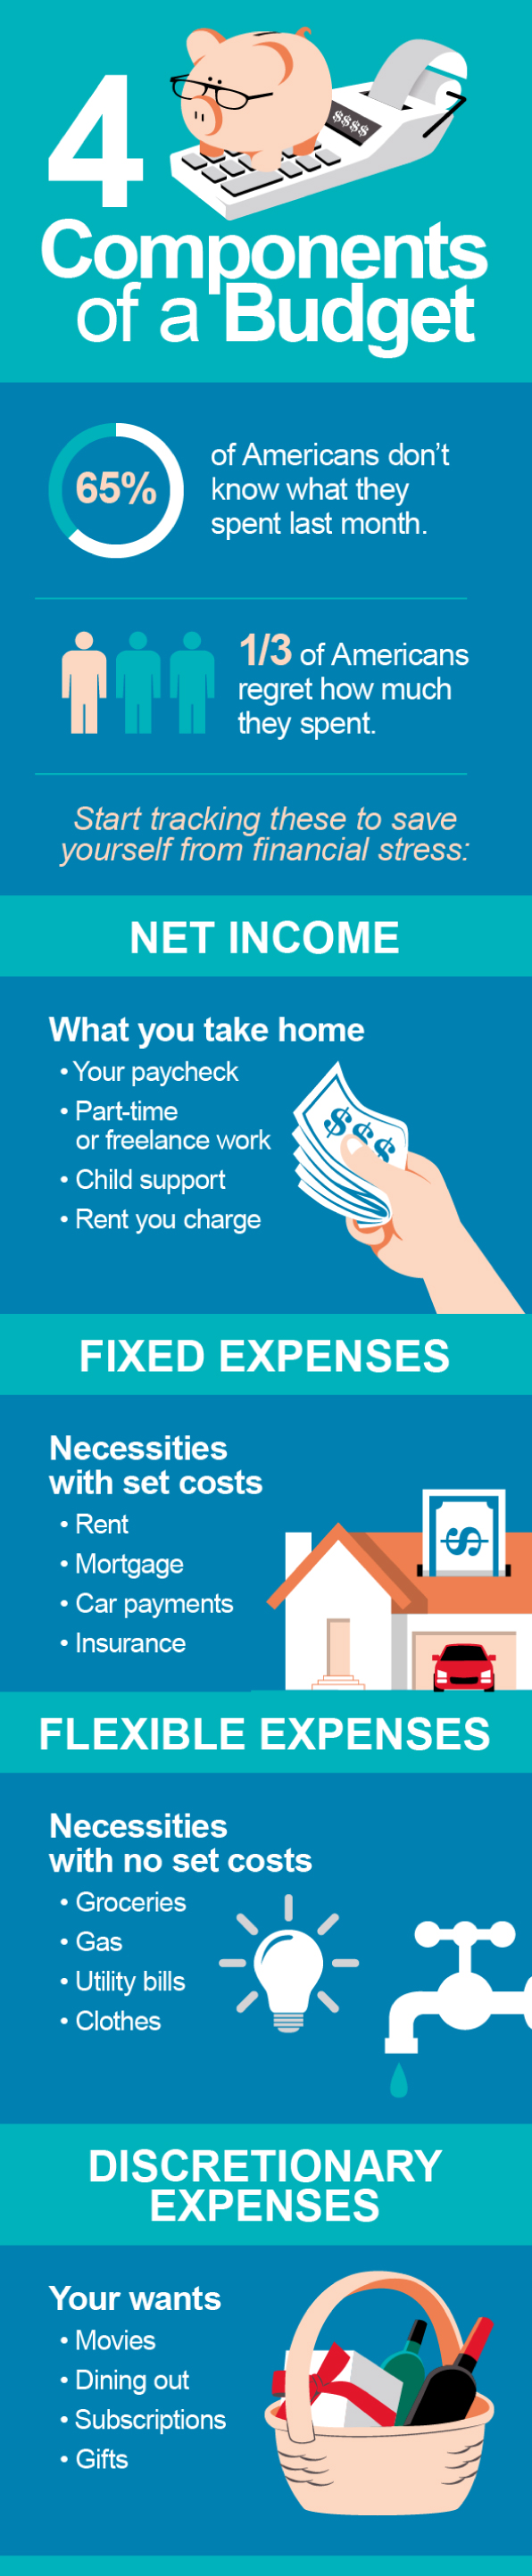 The Key Components of a Budget infographic